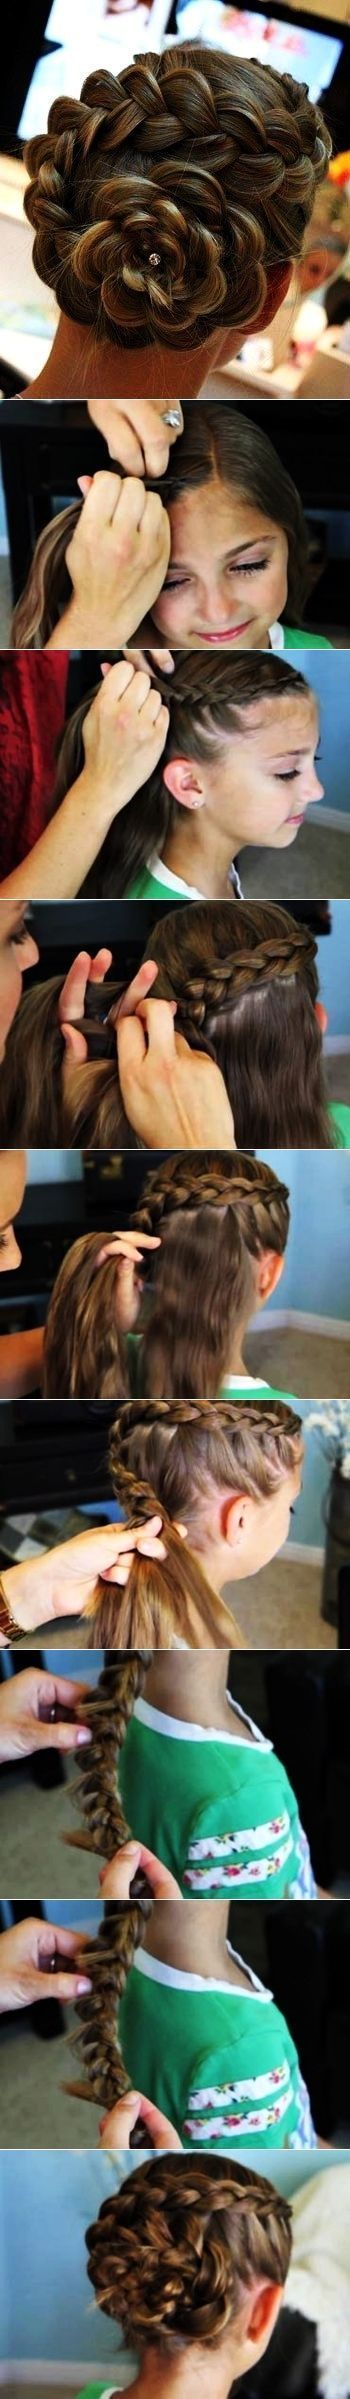 best school hair ideas images on pinterest hairstyle ideas